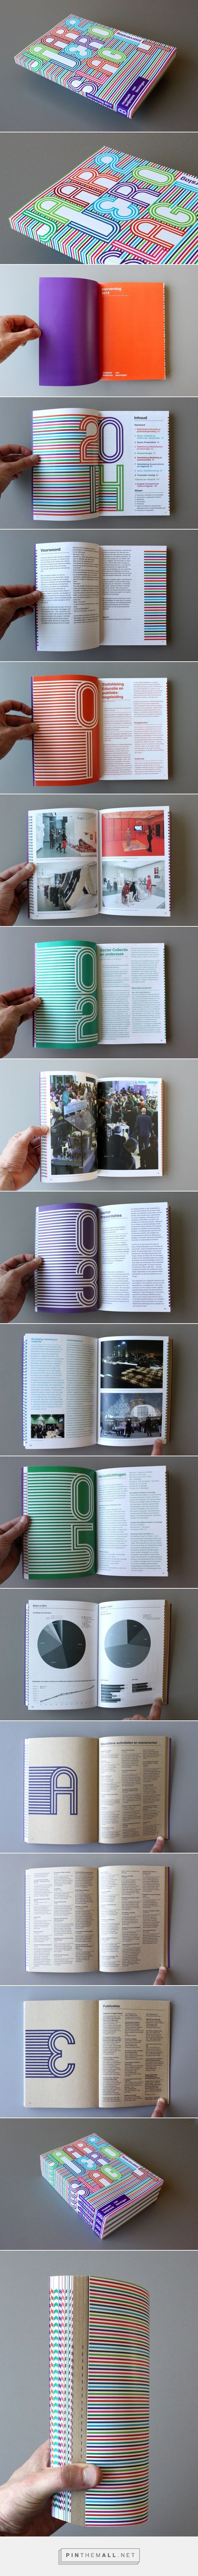 Museum Boijmans / annual report by Vicente Granger